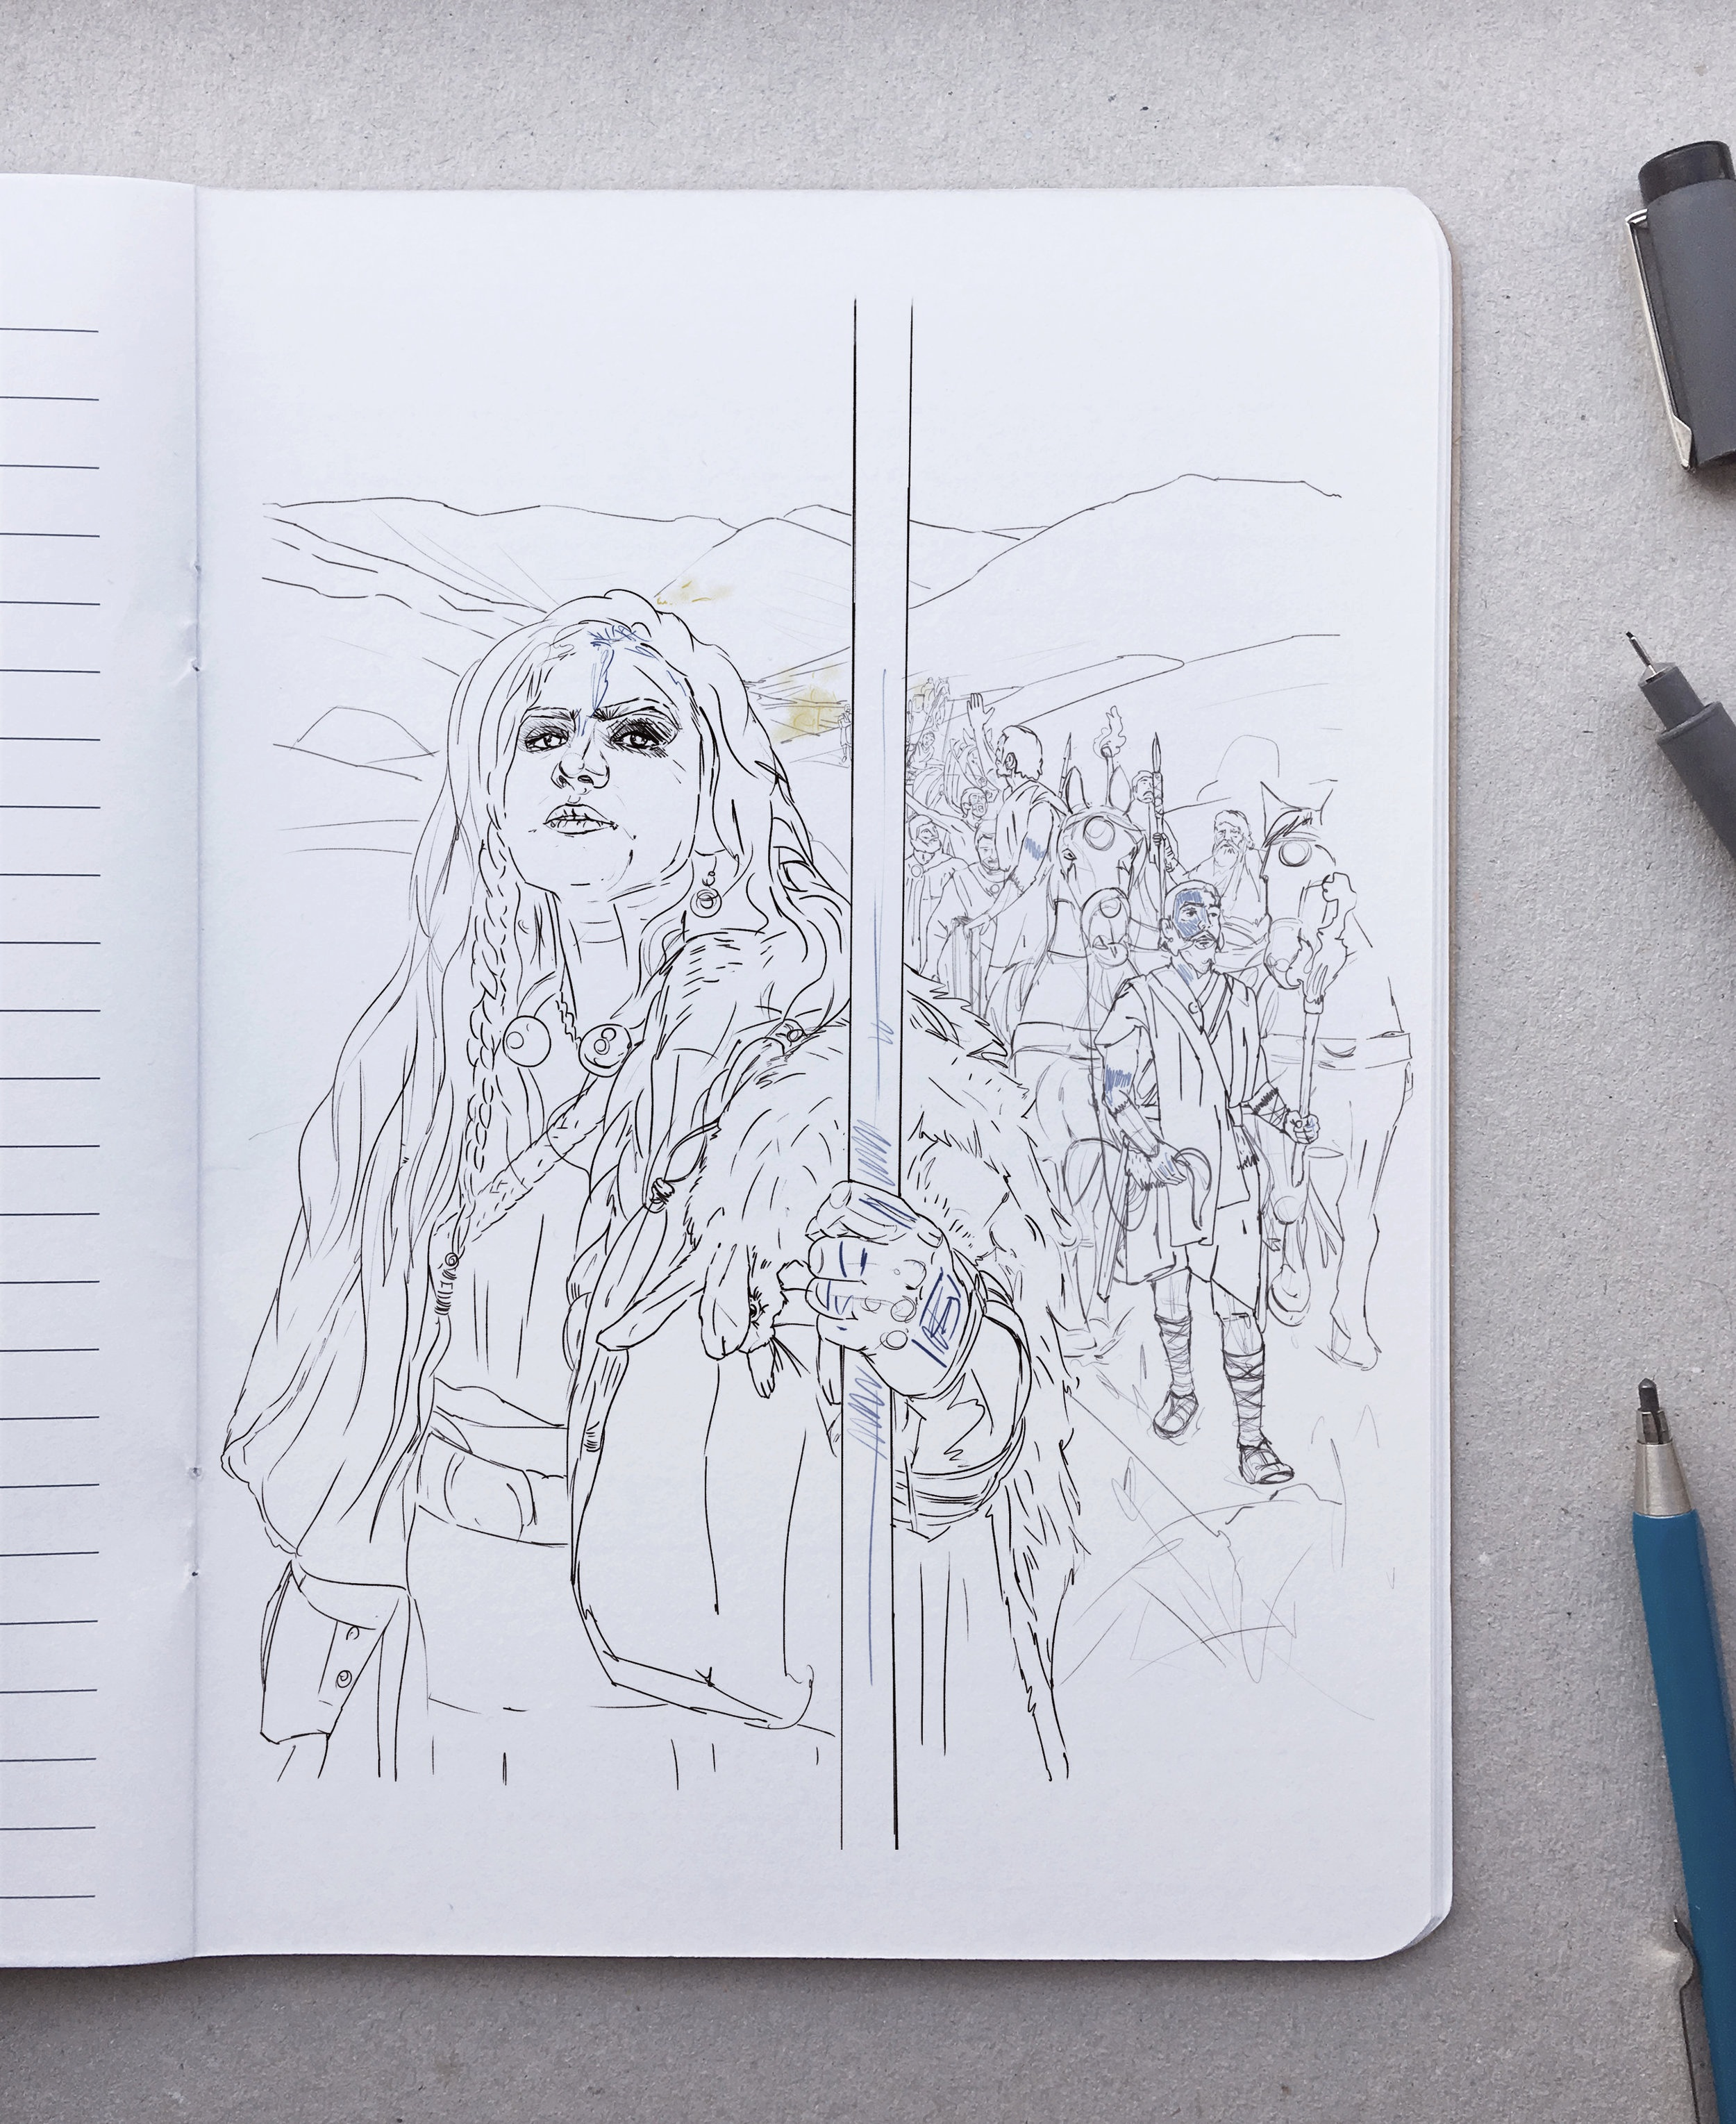 First sketch of Boudica.